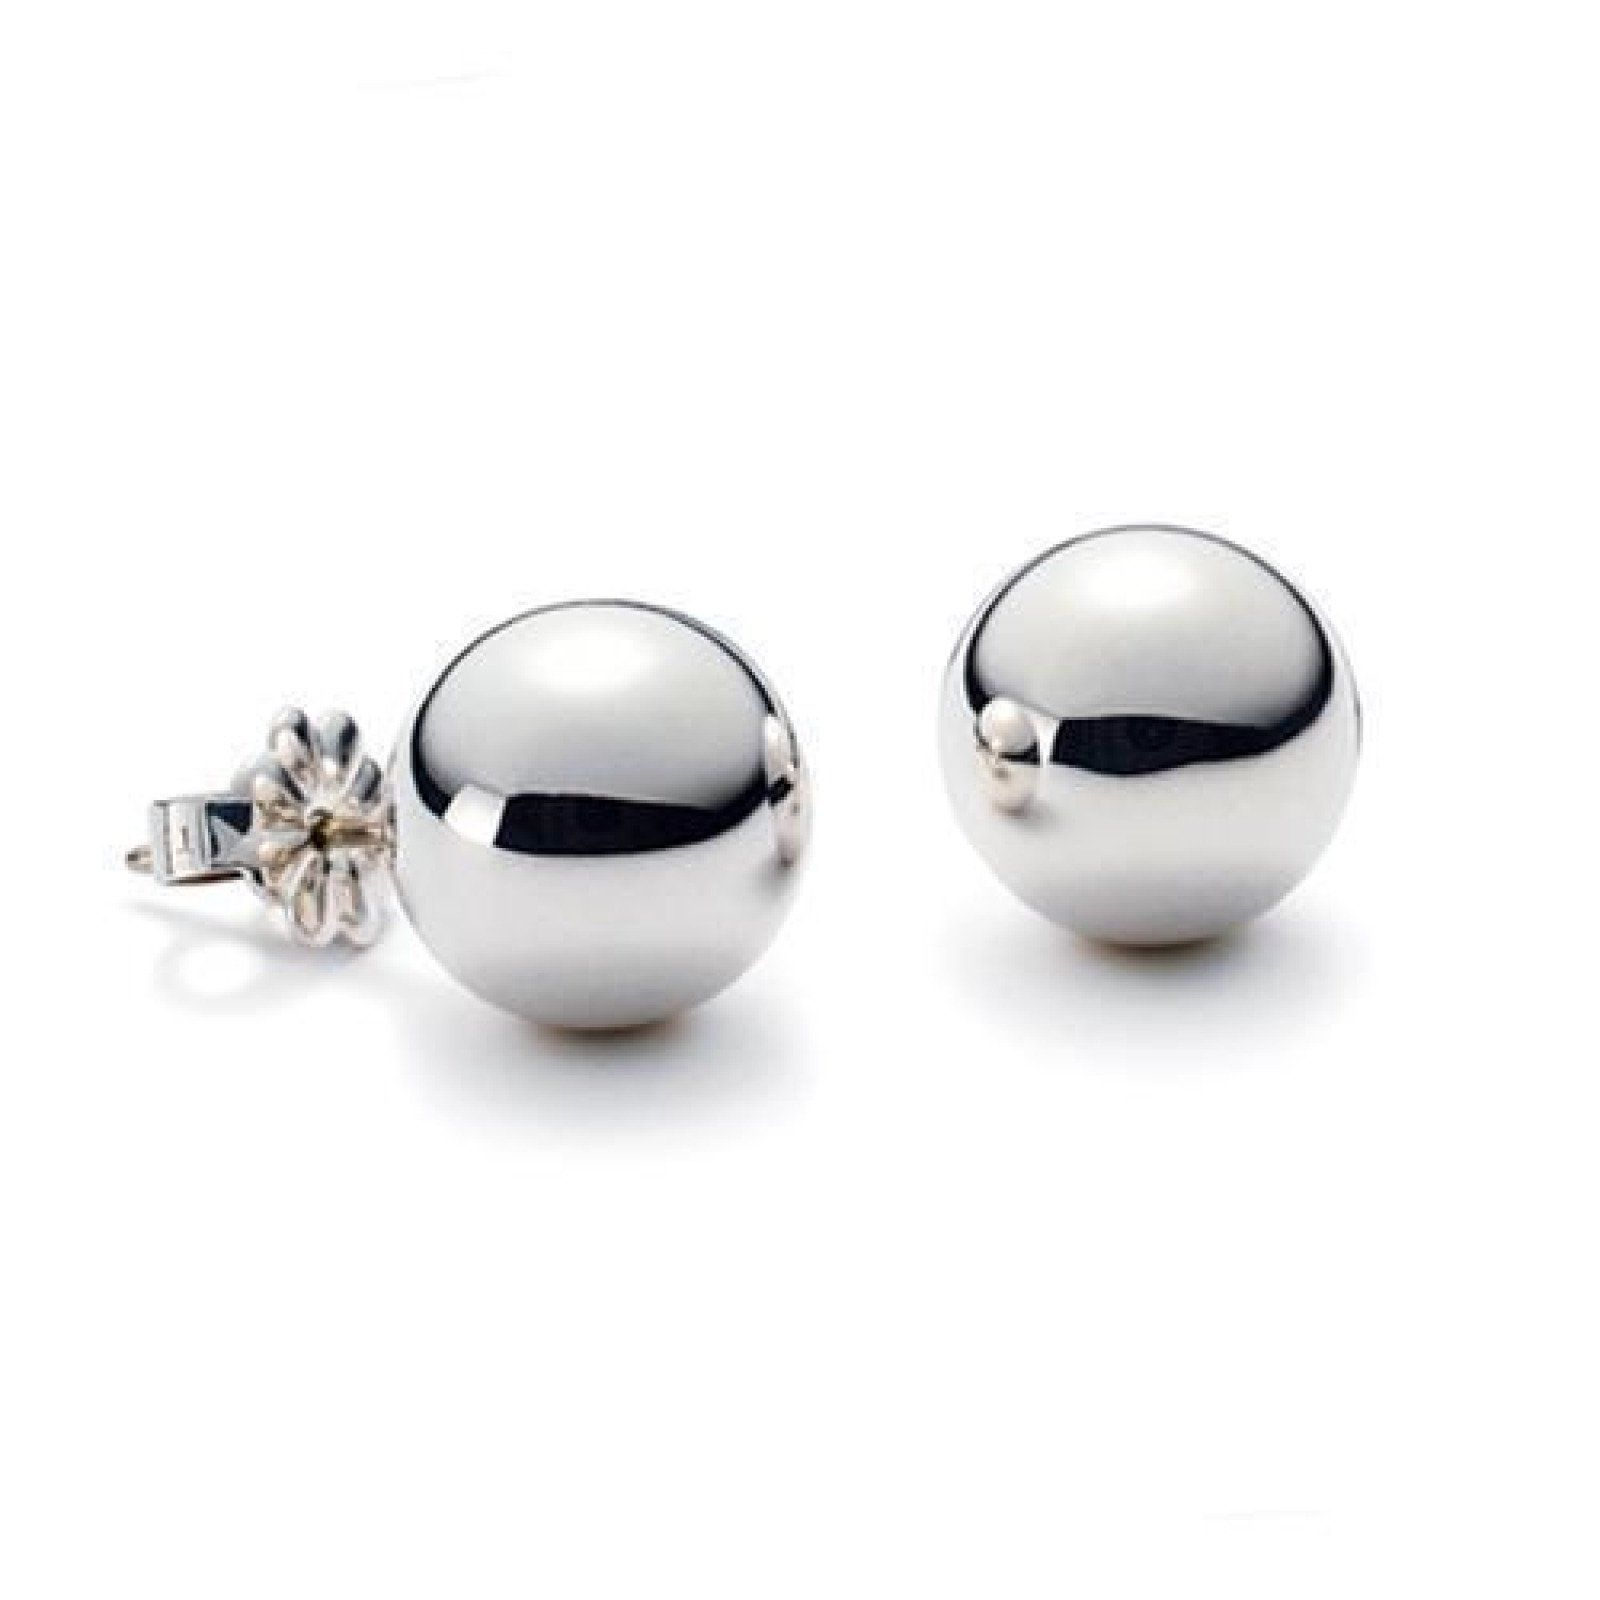 21f7bc17b Tiffany & Co. Bead Earrings in Sterling Silver– Oliver Jewellery